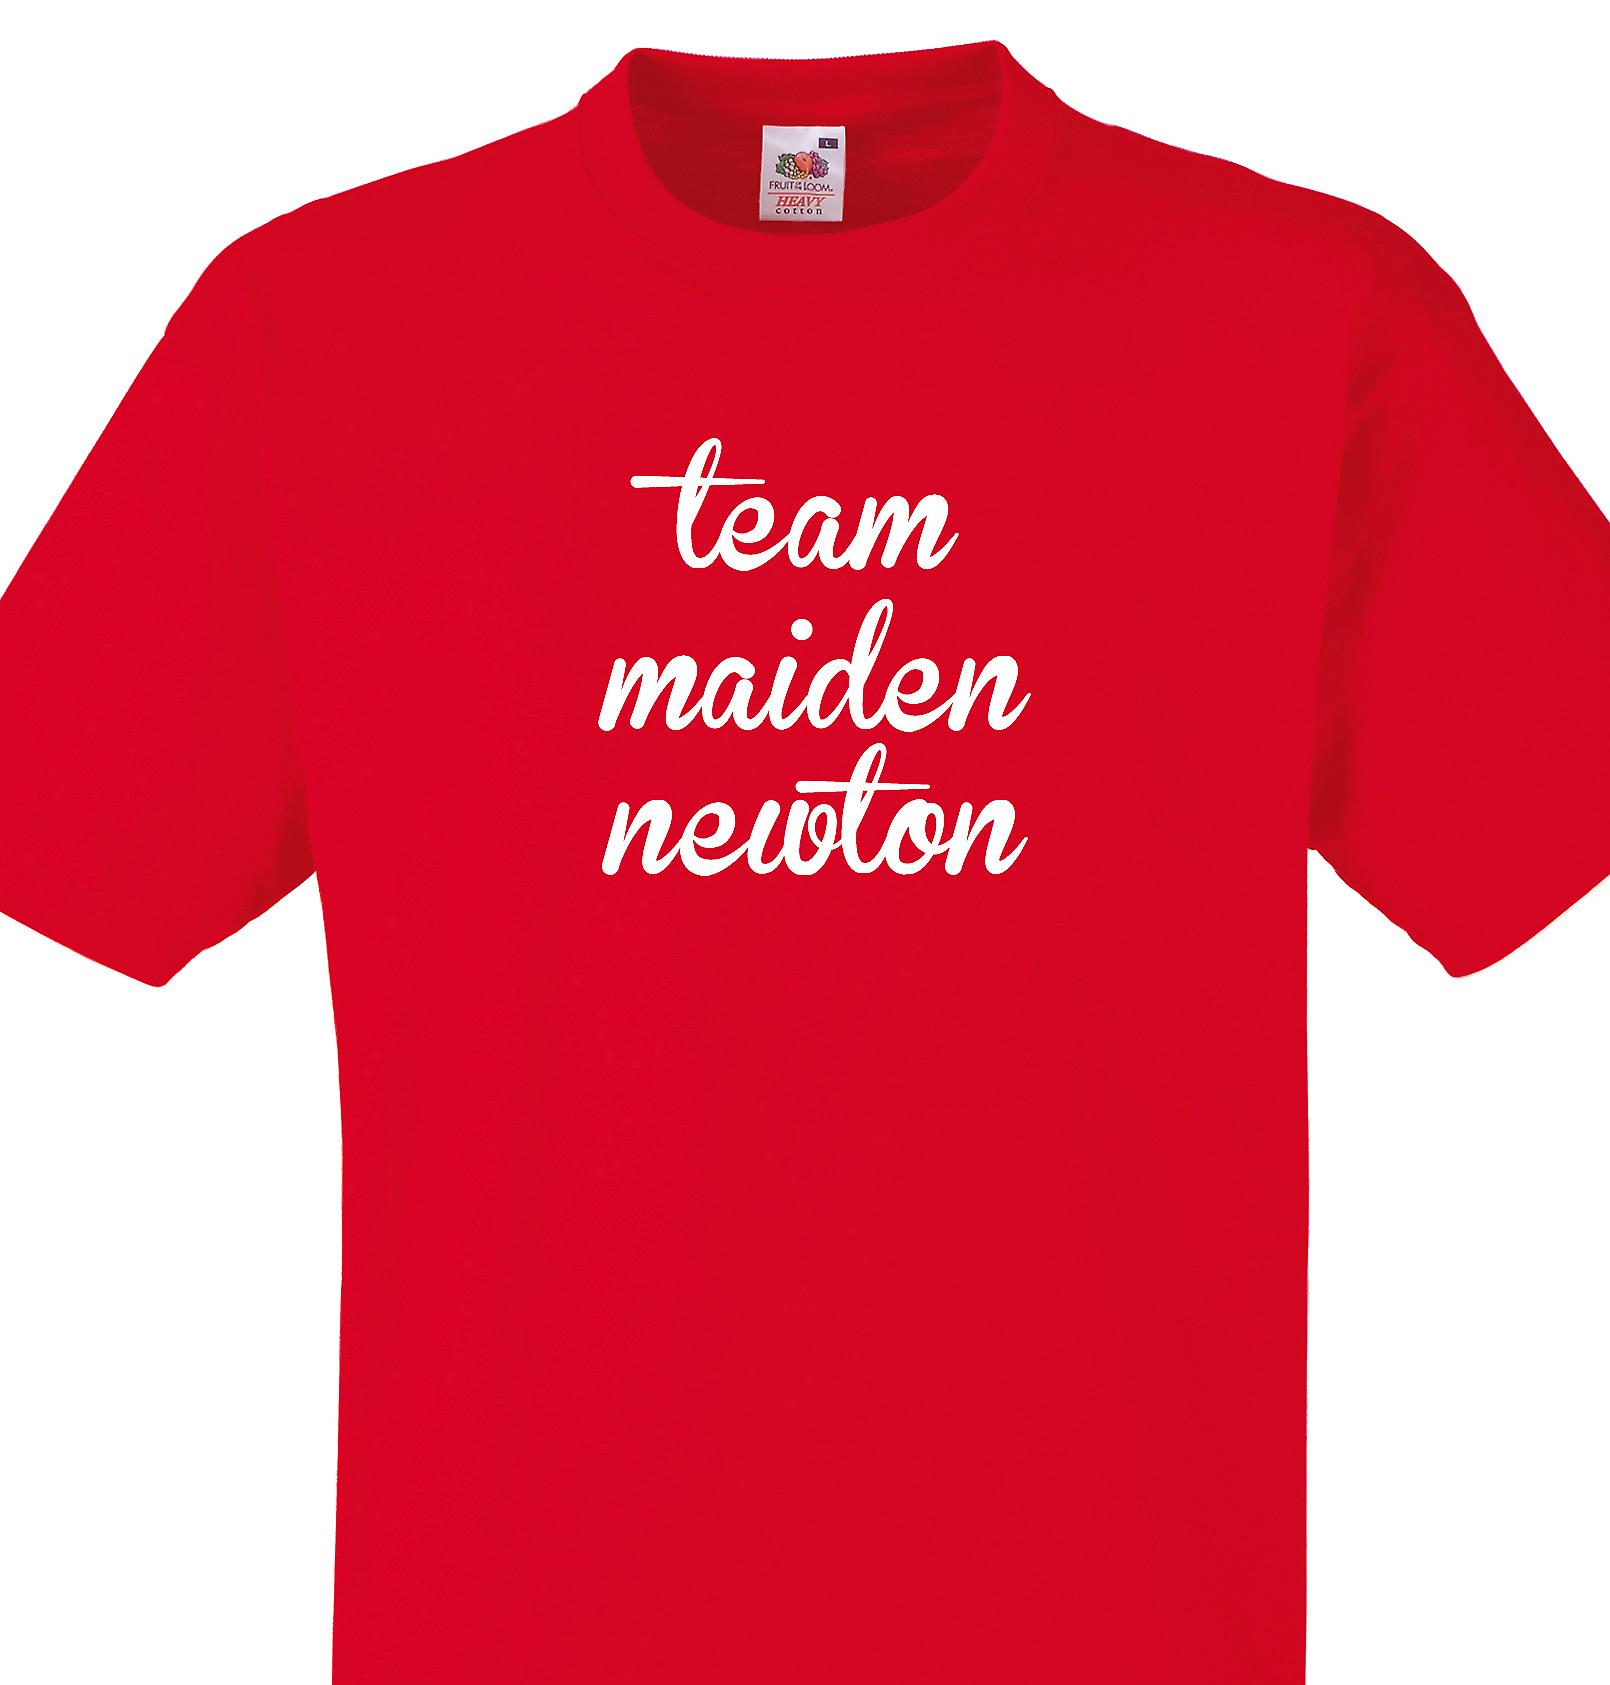 Team Maiden newton Red T shirt